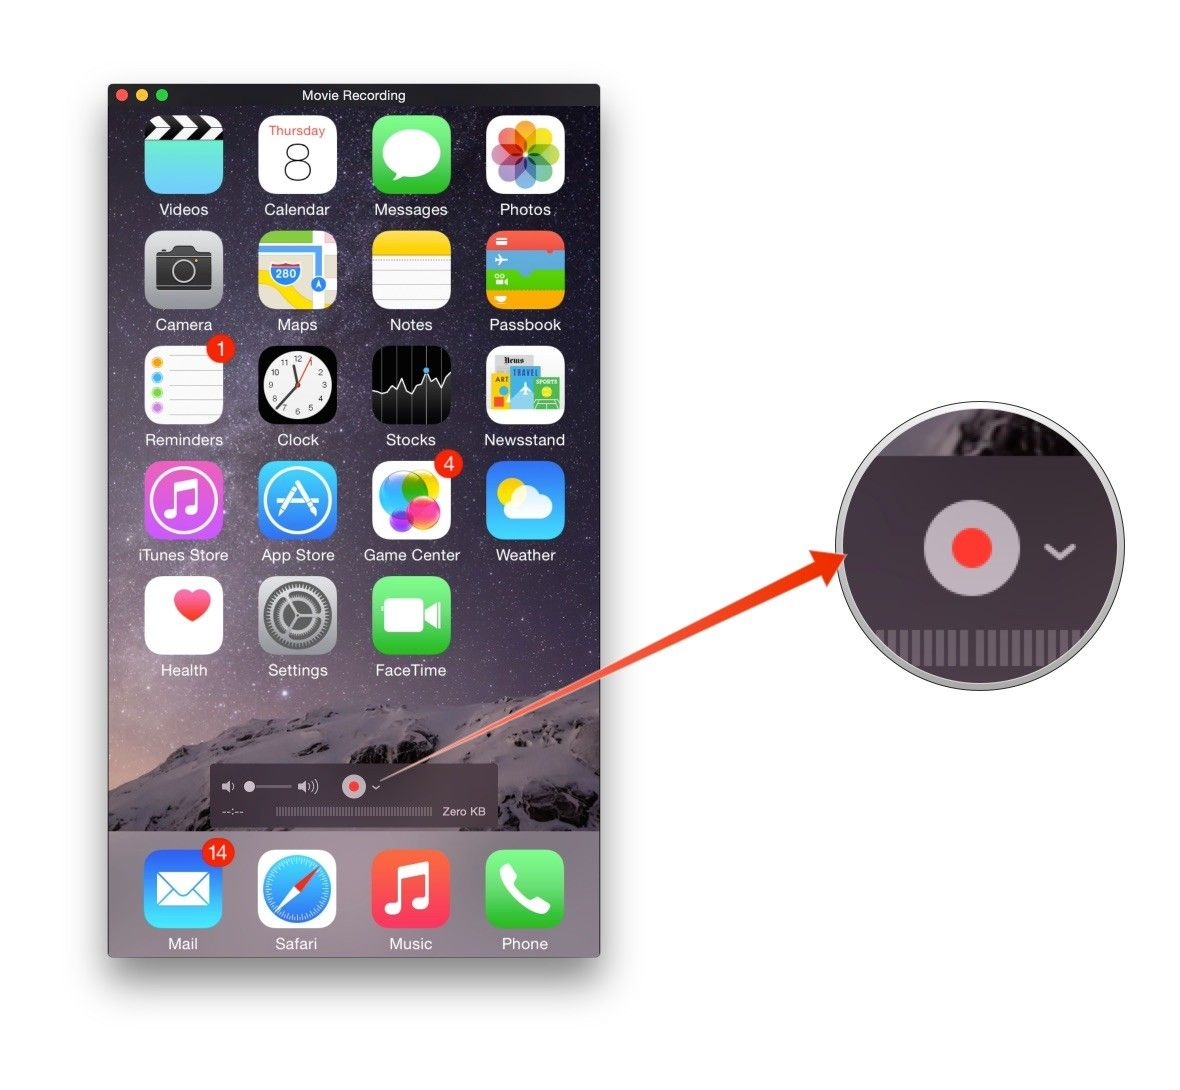 2255104c652f1b72ffe99c4d613bfd40 - How To Get The Circle Thing On Your Iphone